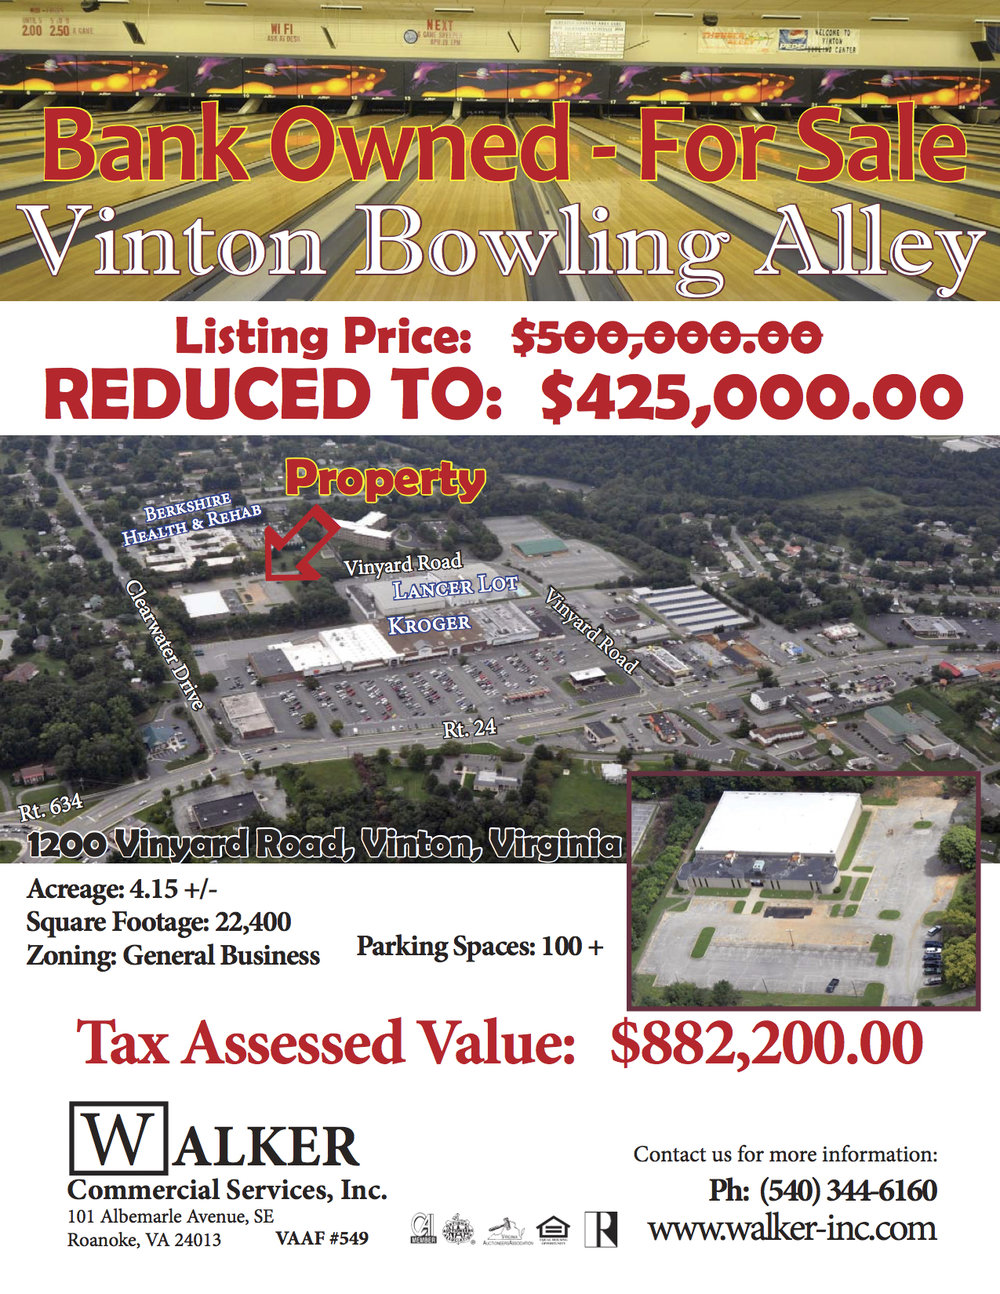 Vinton jpgBowling Alley FOR SALE BROCHURE.jpg